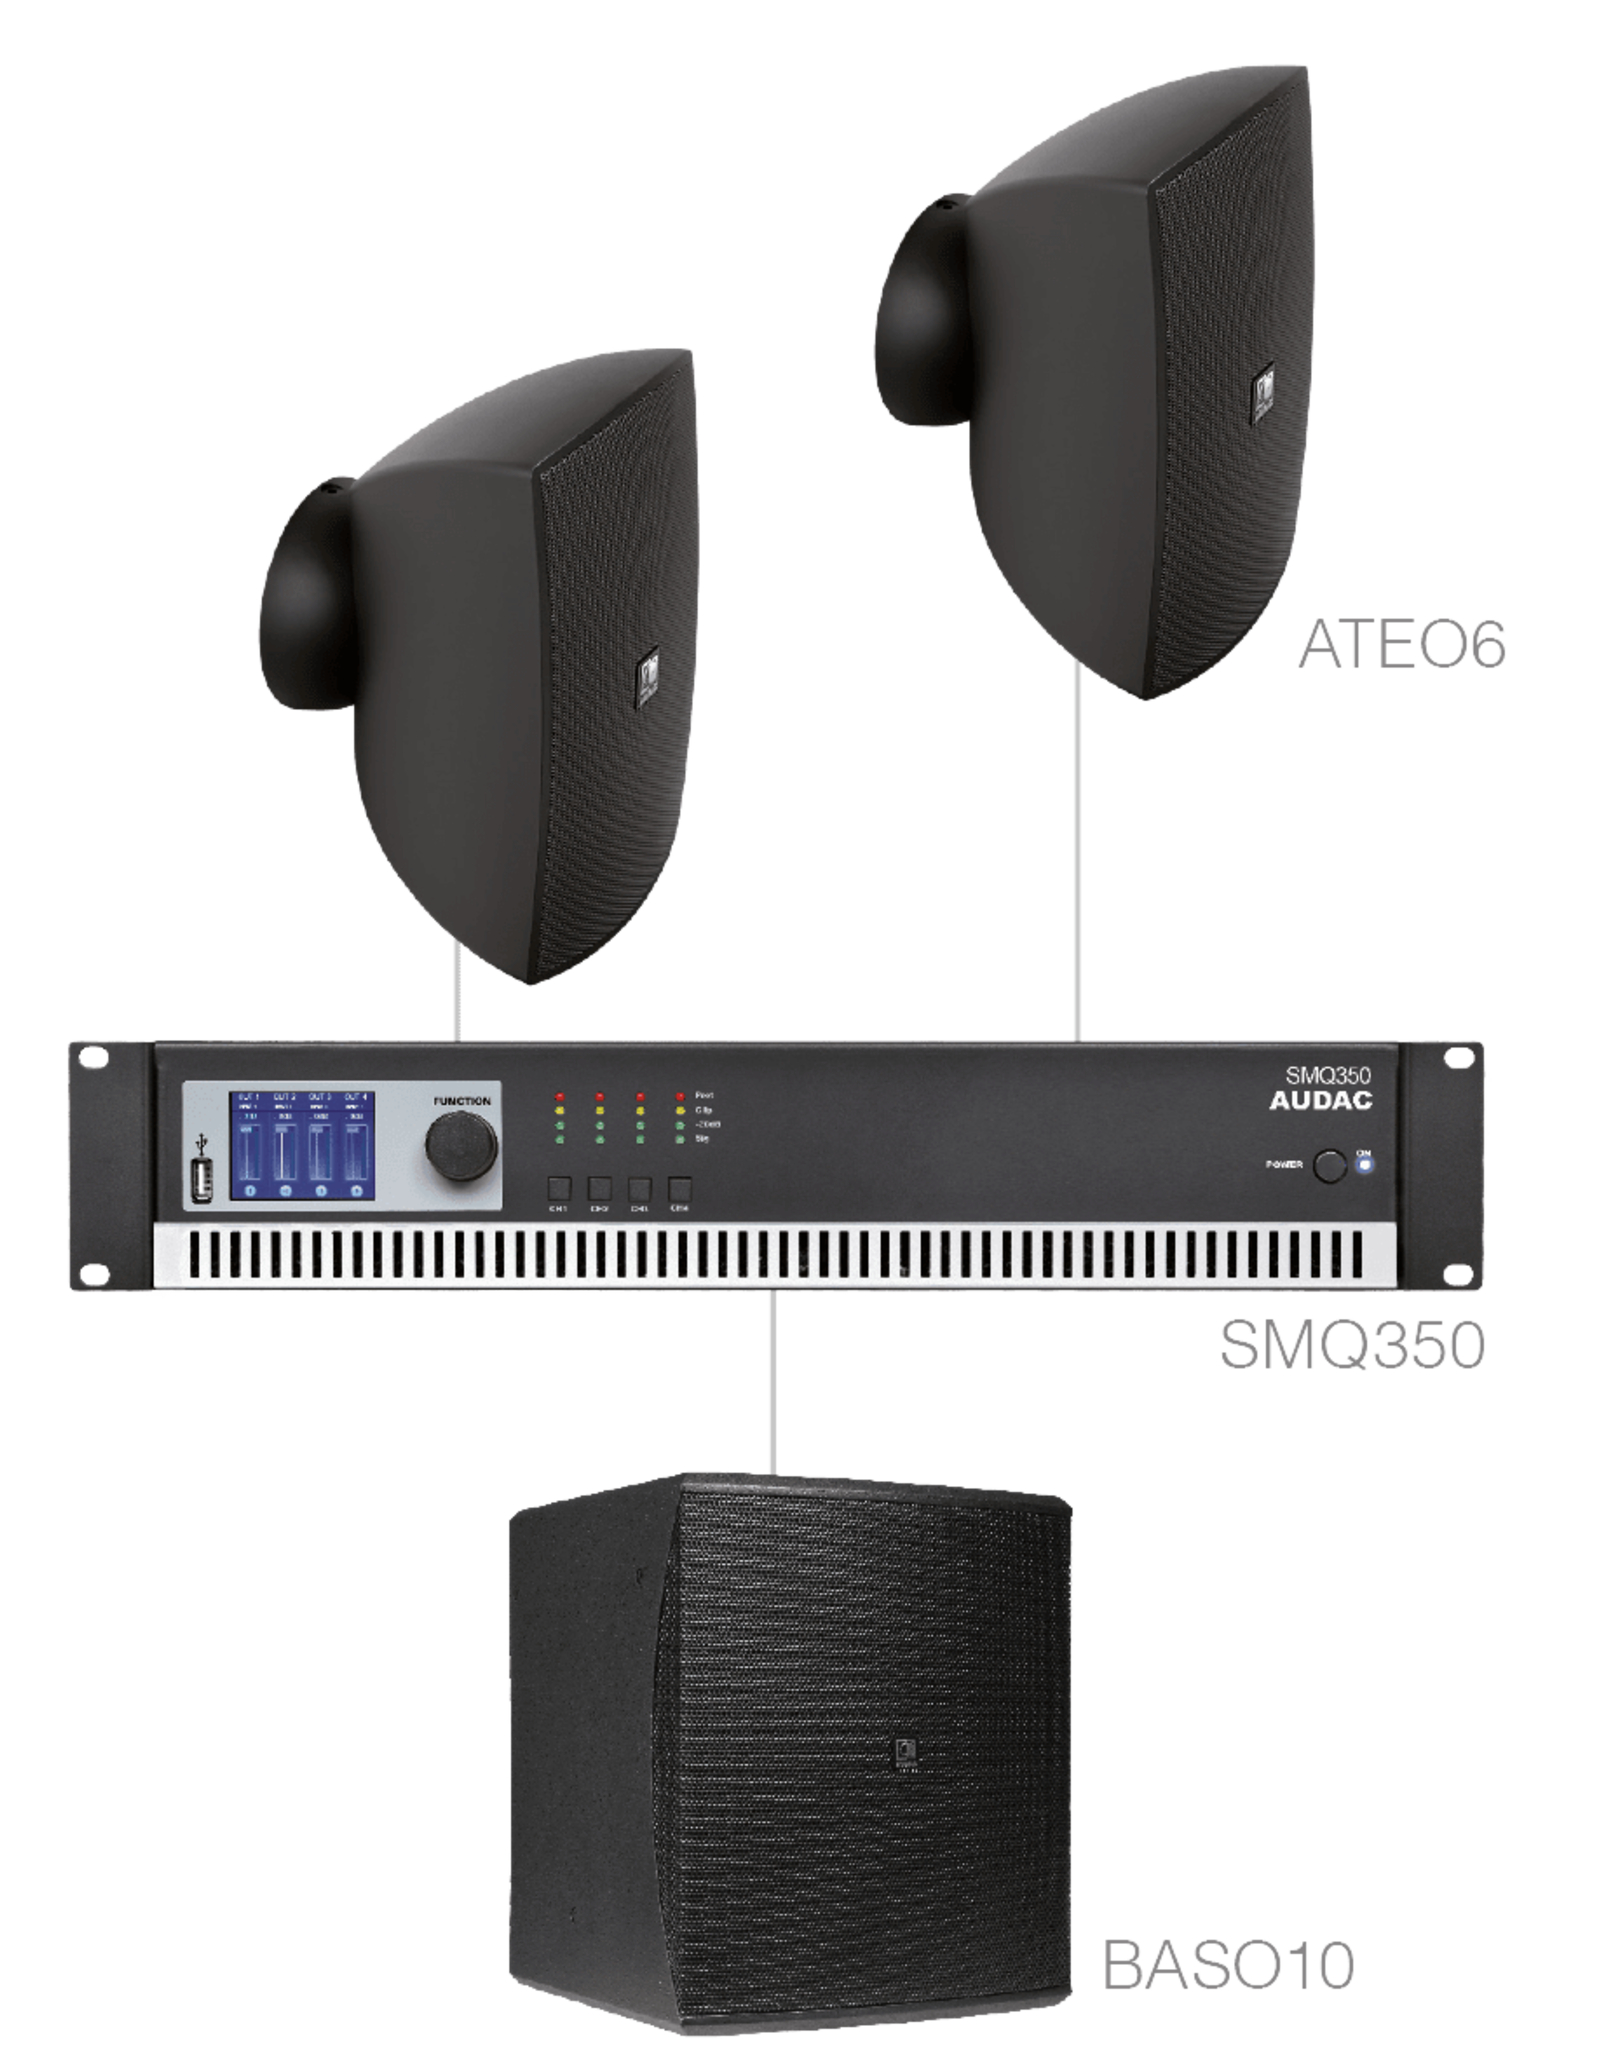 Audac 2 x ATEO6 + BASO10 + SMQ350 Black version